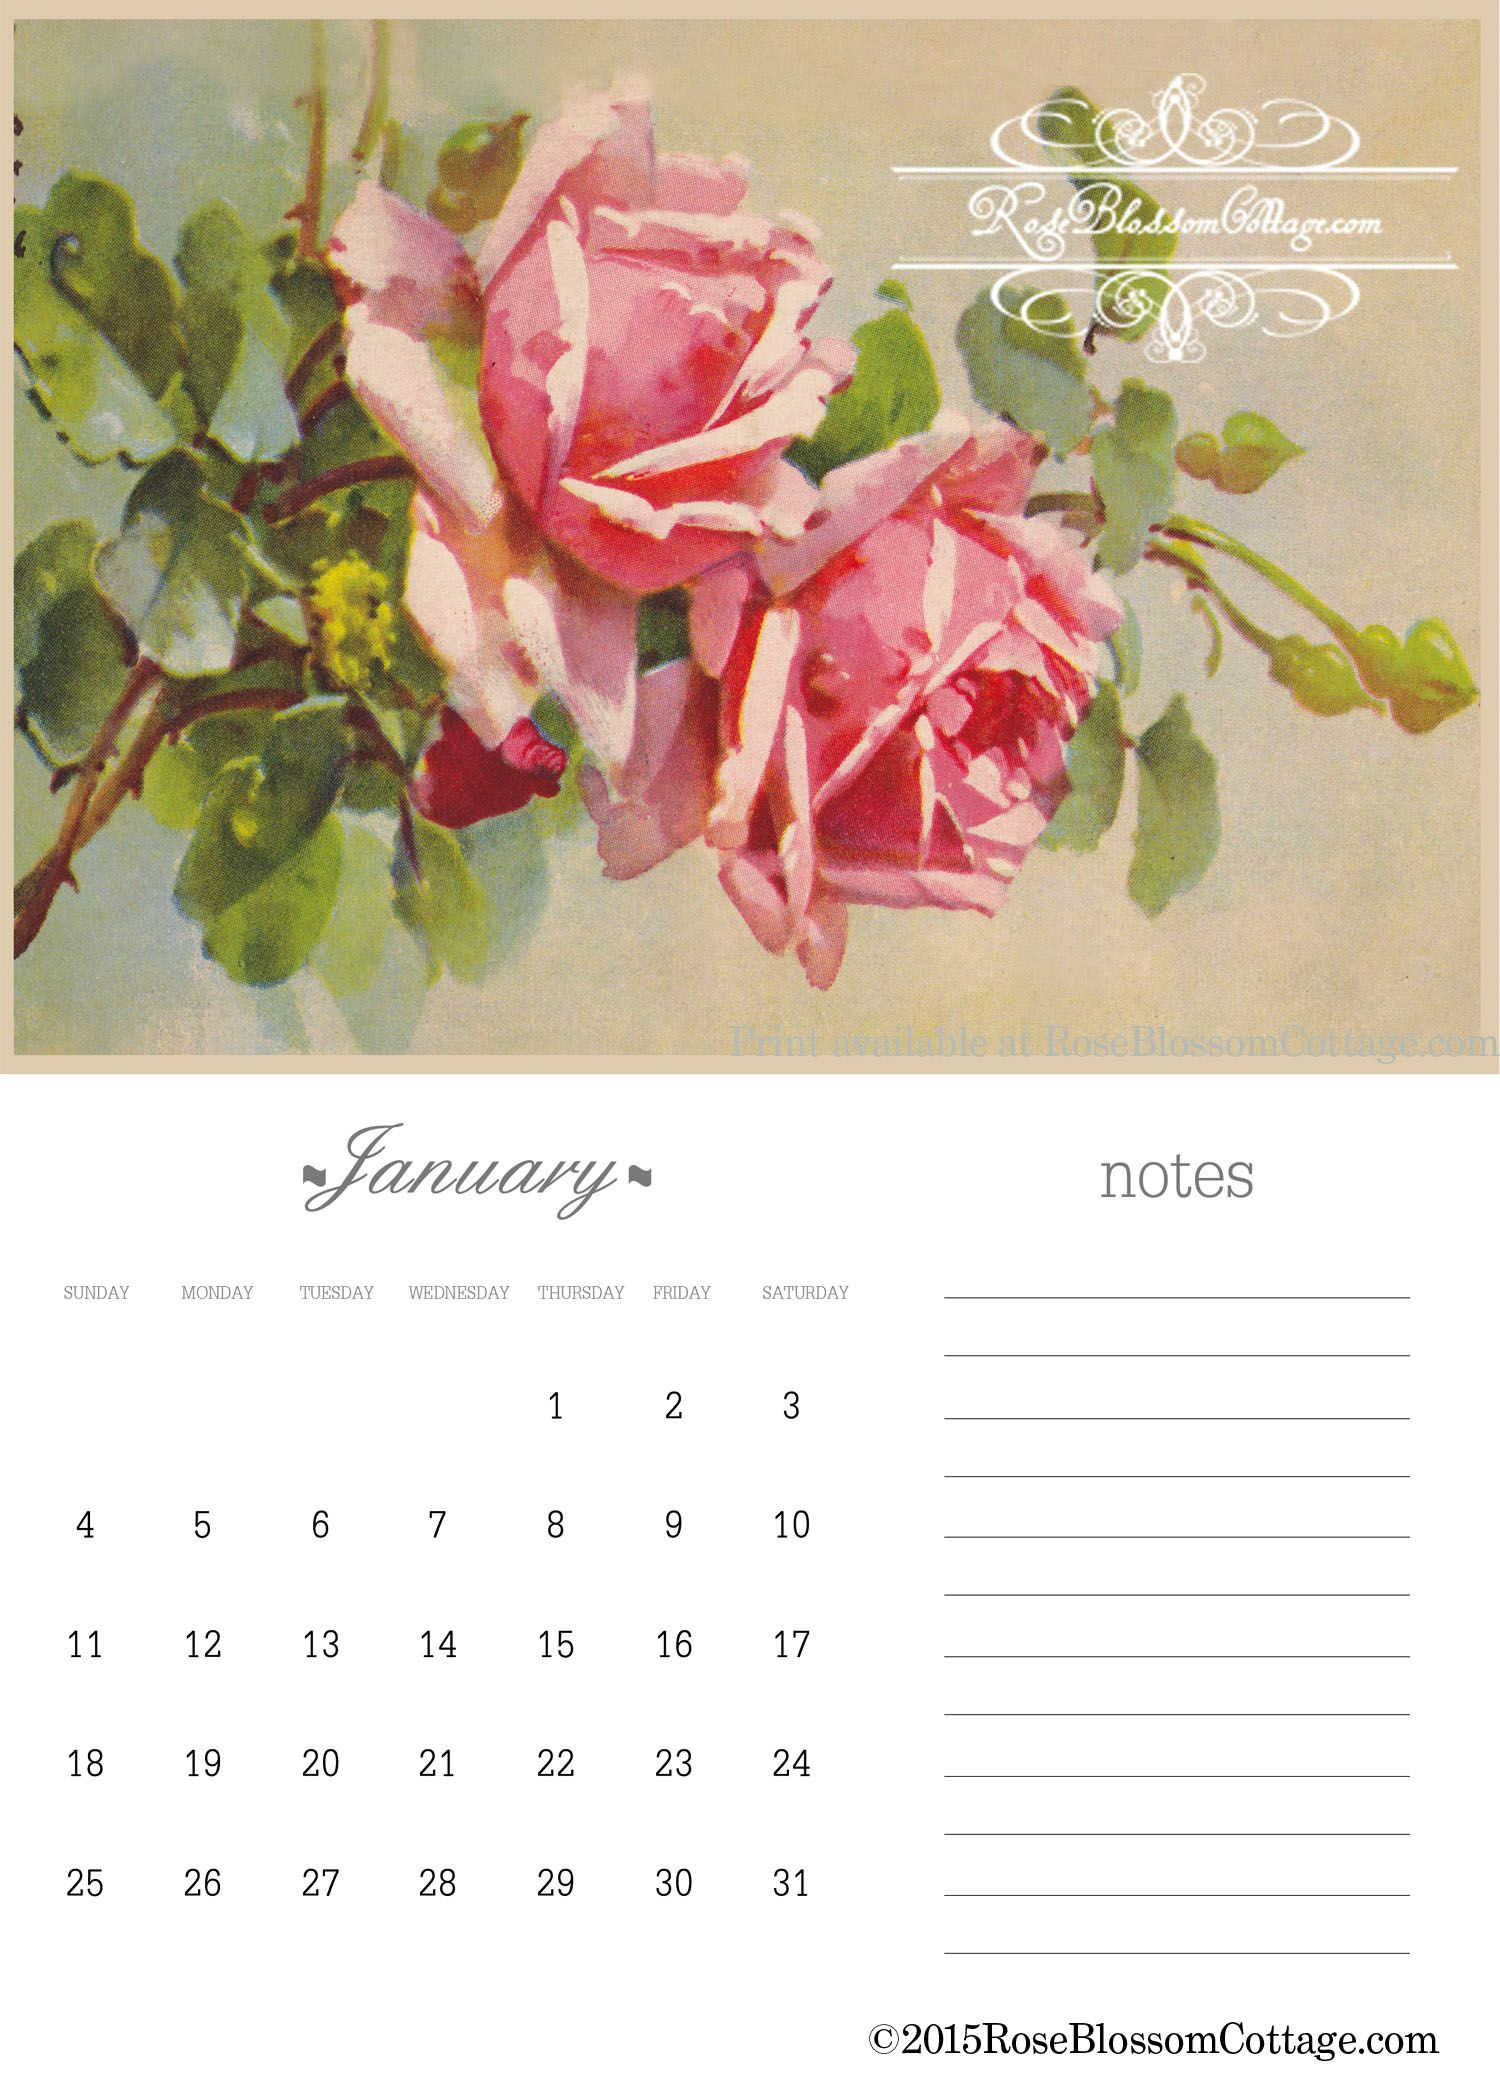 Free Downloadable January 2015 Roses calendar from http://www.RoseBlossomCottage.com